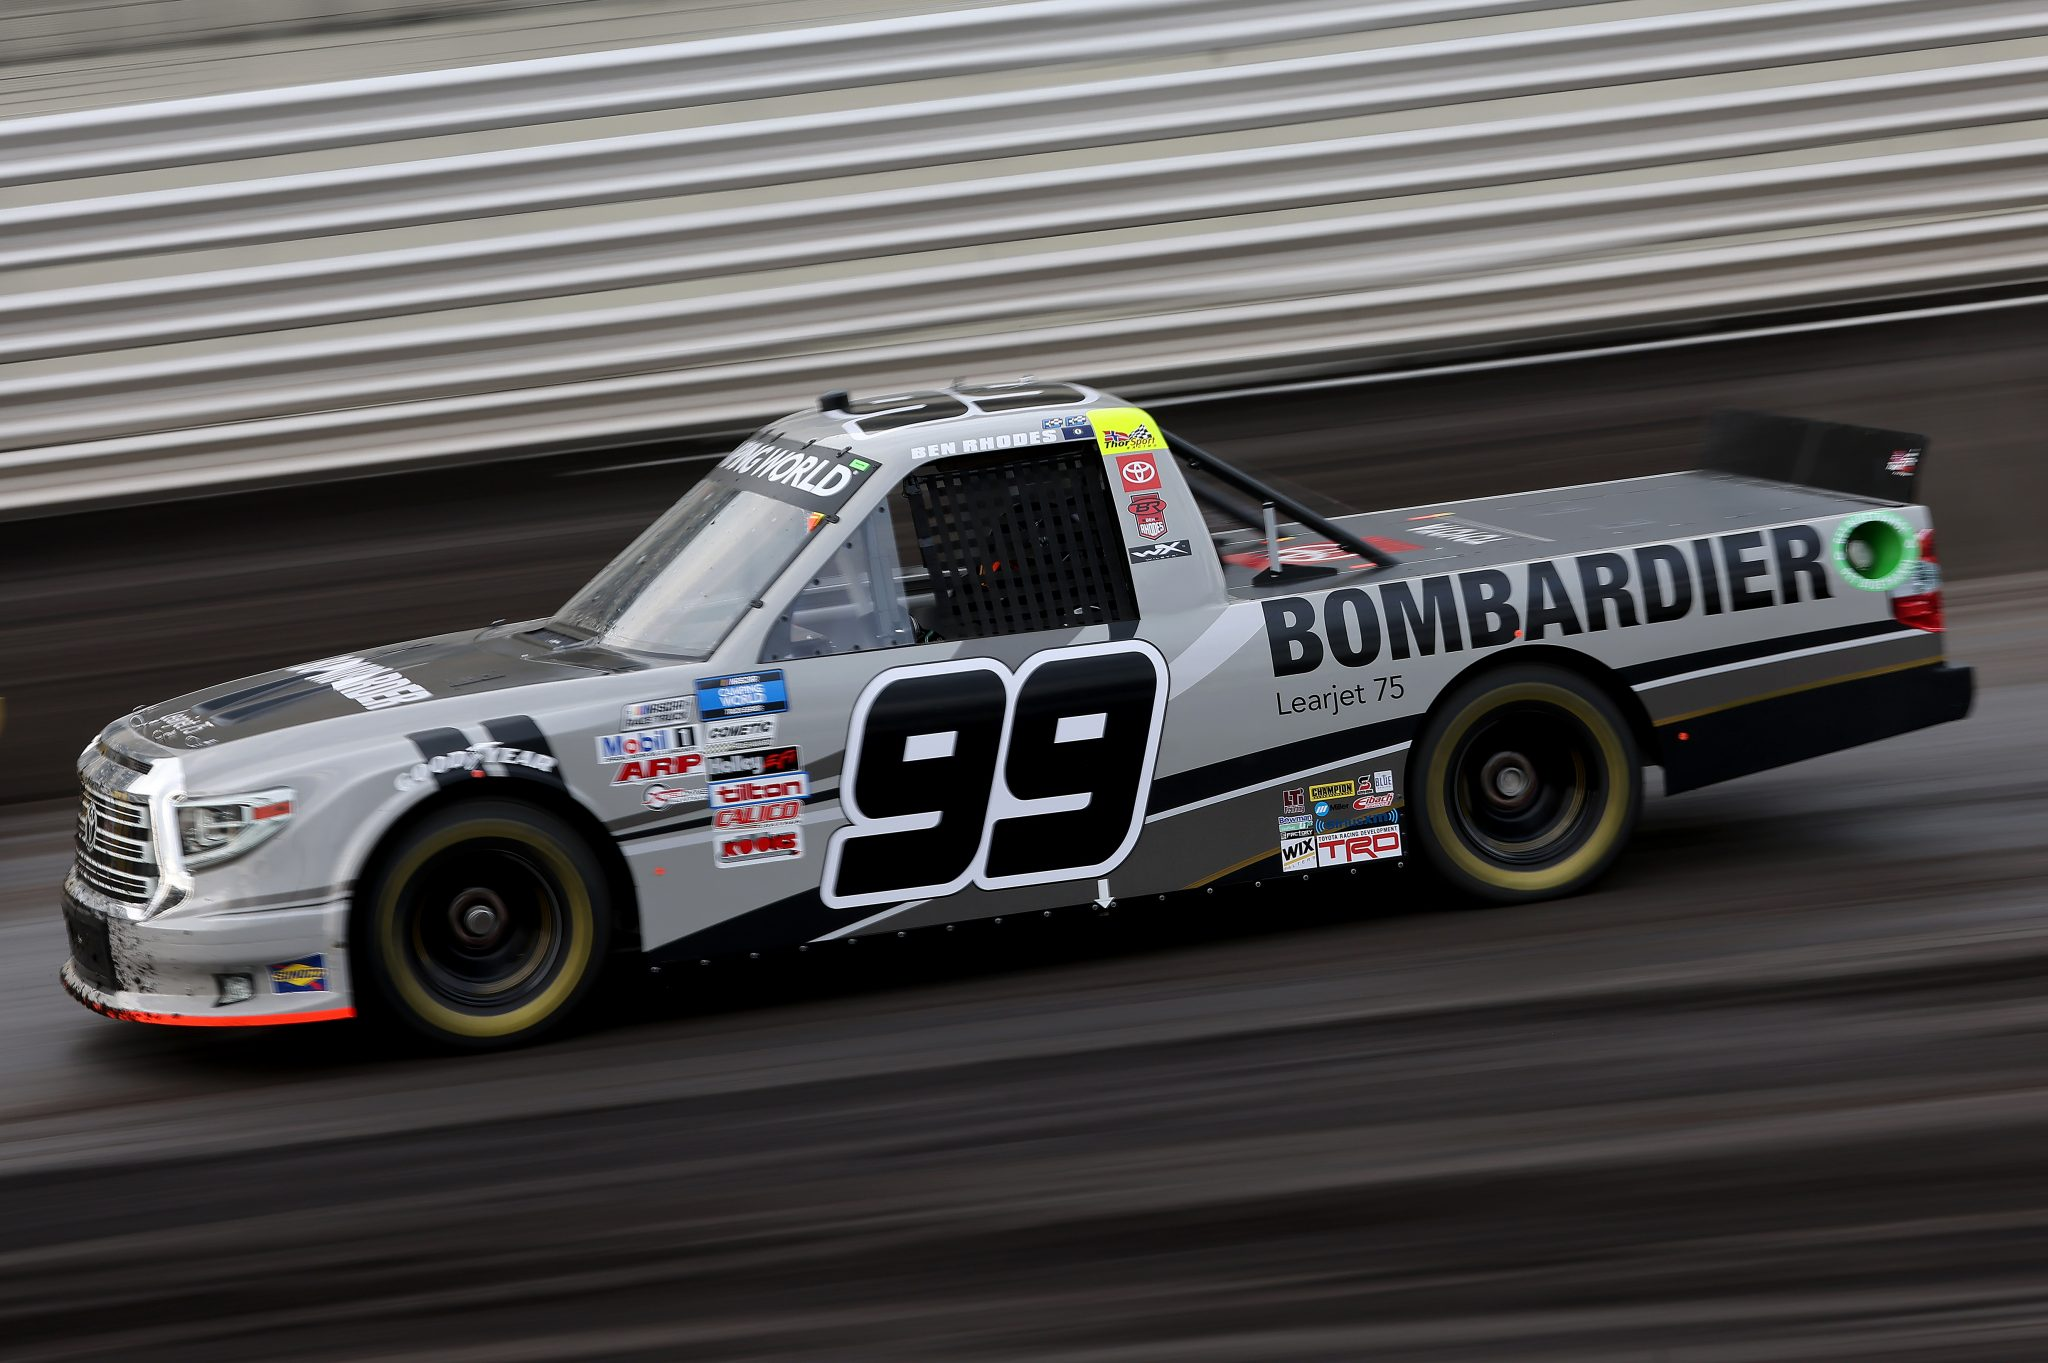 KNOXVILLE, IOWA - JULY 09: Ben Rhodes, driver of the #99 Bombardier LearJet 75 Toyota, drives during qualifying for the NASCAR Camping World Truck Series Corn Belt 150 presented by Premier Chevy Dealers at Knoxville Raceway on July 09, 2021 in Knoxville, Iowa. (Photo by James Gilbert/Getty Images) | Getty Images